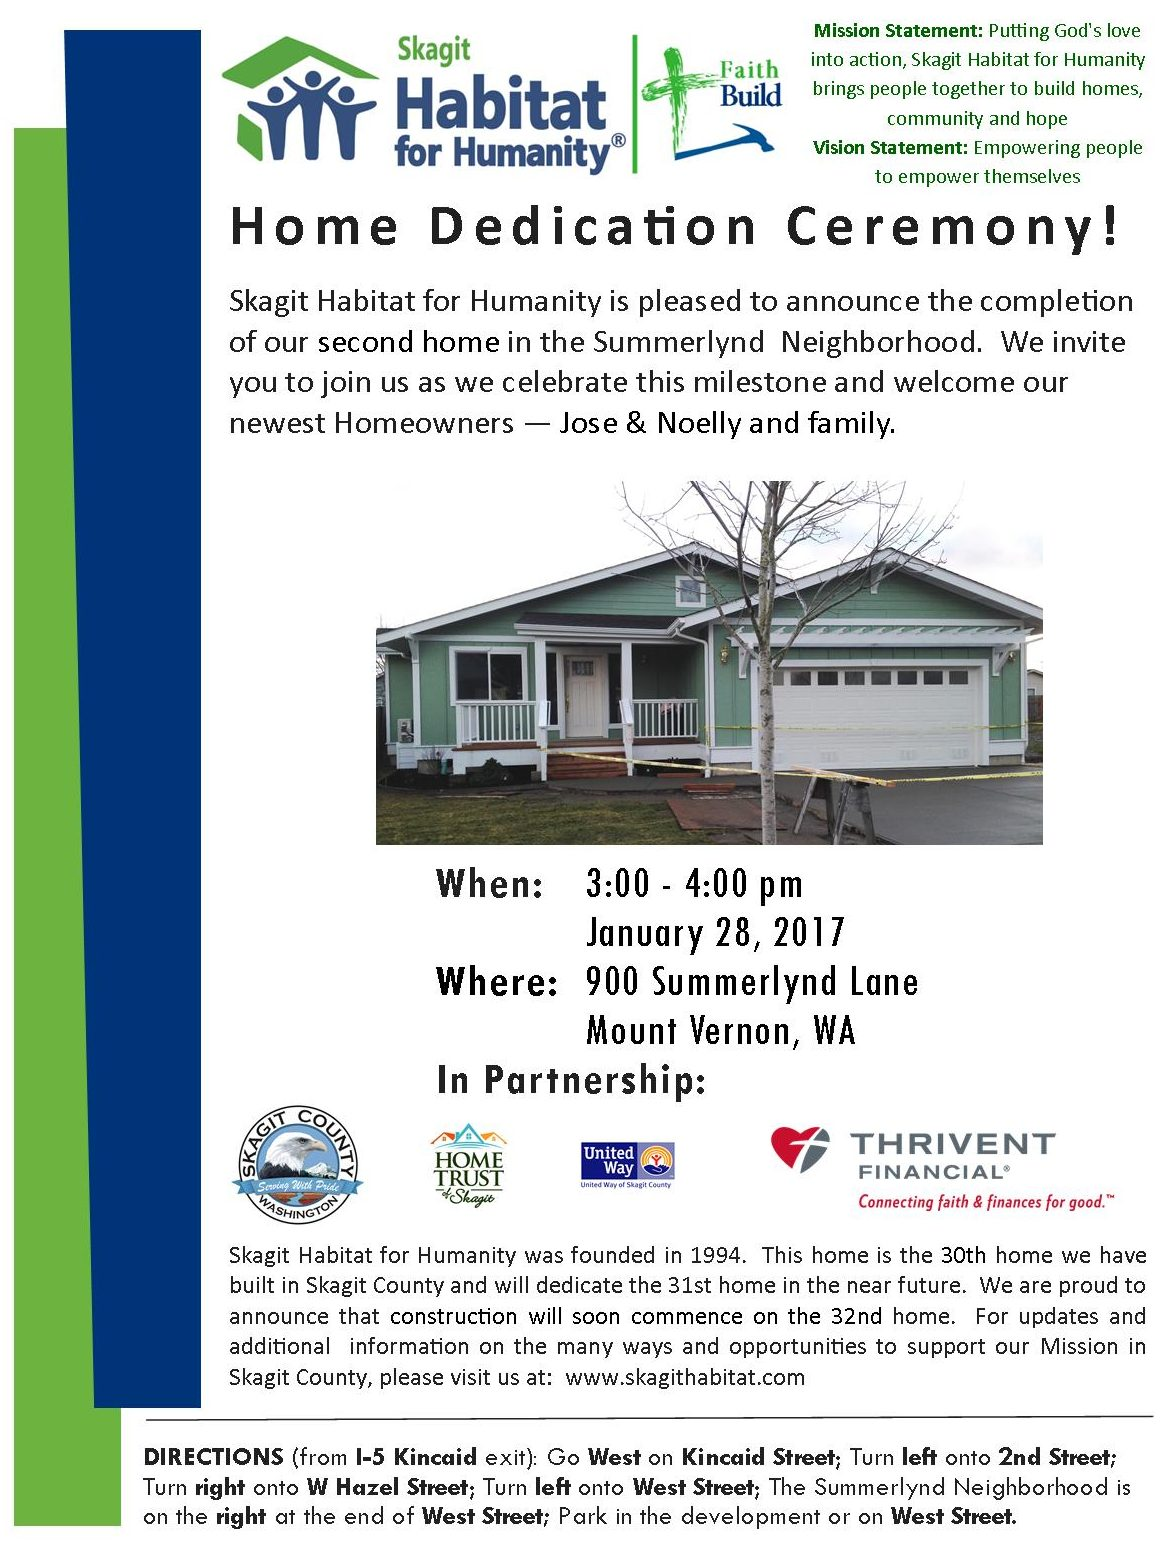 30th Home Dedication 1/28/2017 at Summerlynd Lane